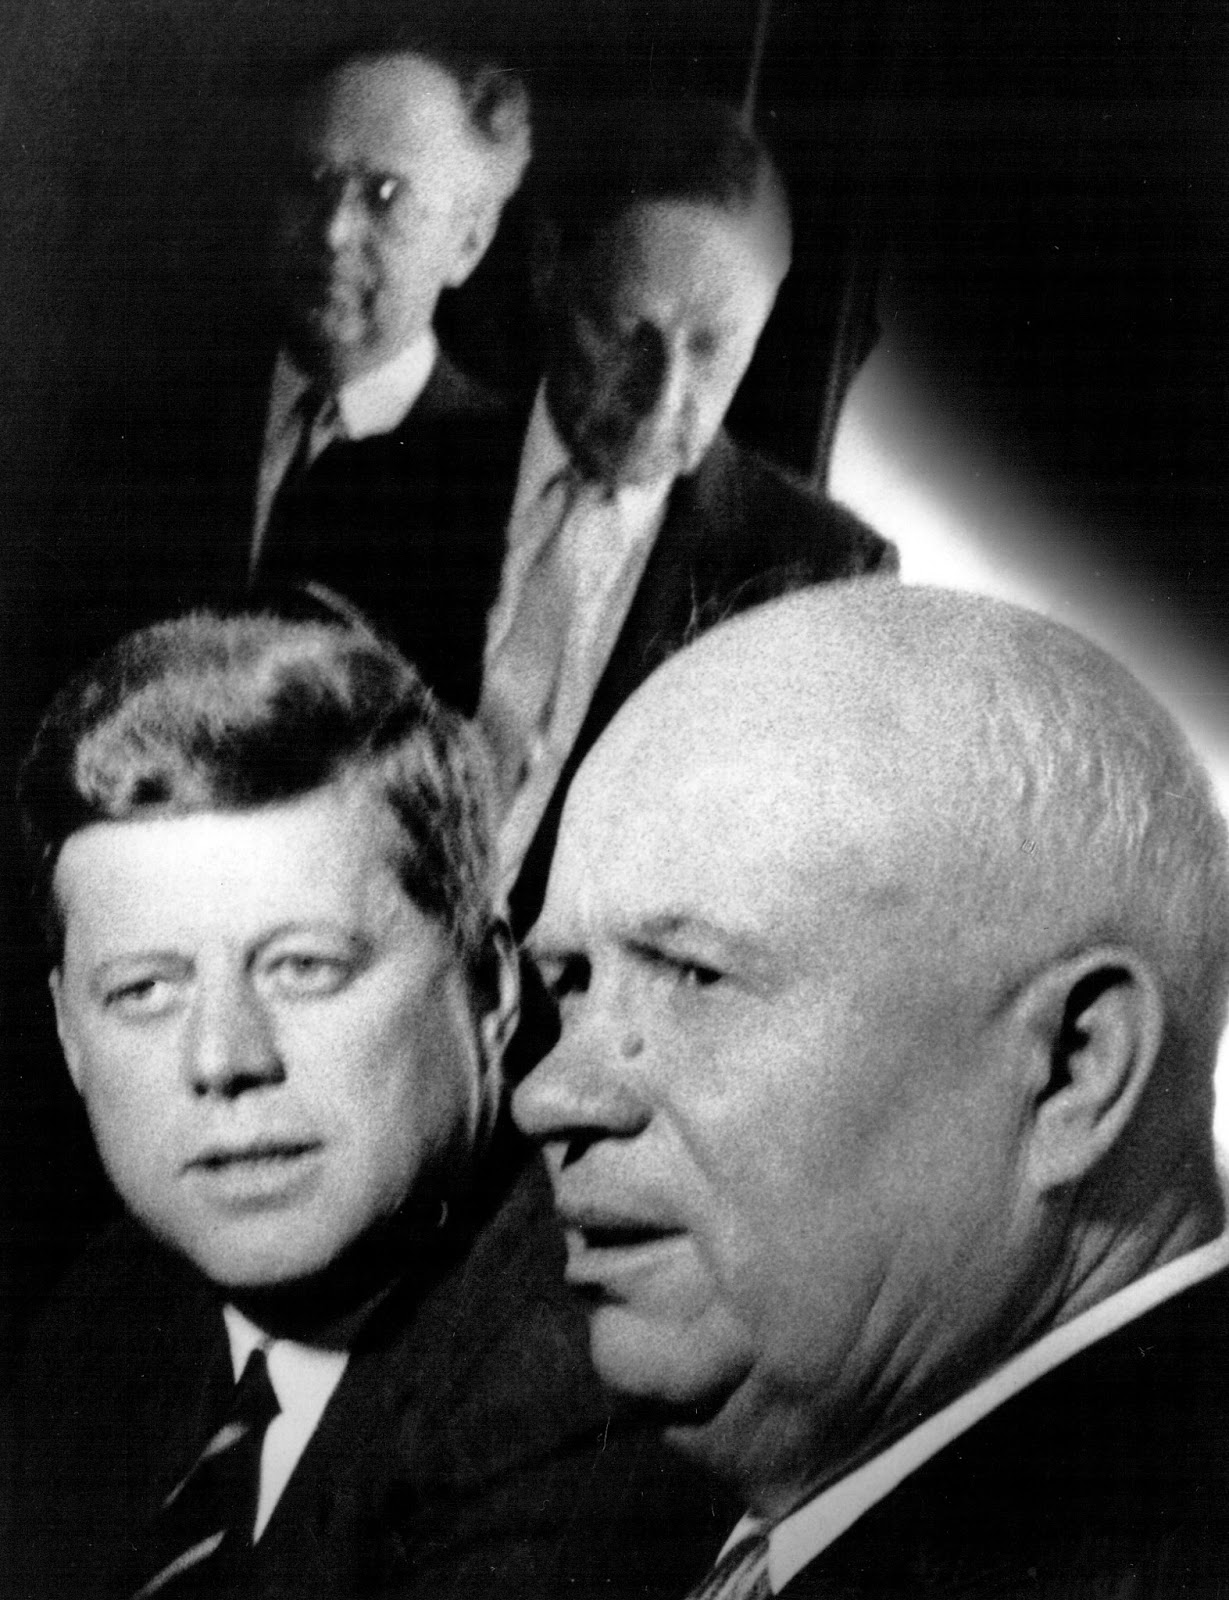 a biography of the life and political career of khrushschev nikita sergeyevich Nikita sergeyevich khrushchev was born in 1894 to an khrushchev's career soared in the 1930s khrushchev was promoted from one political position to.